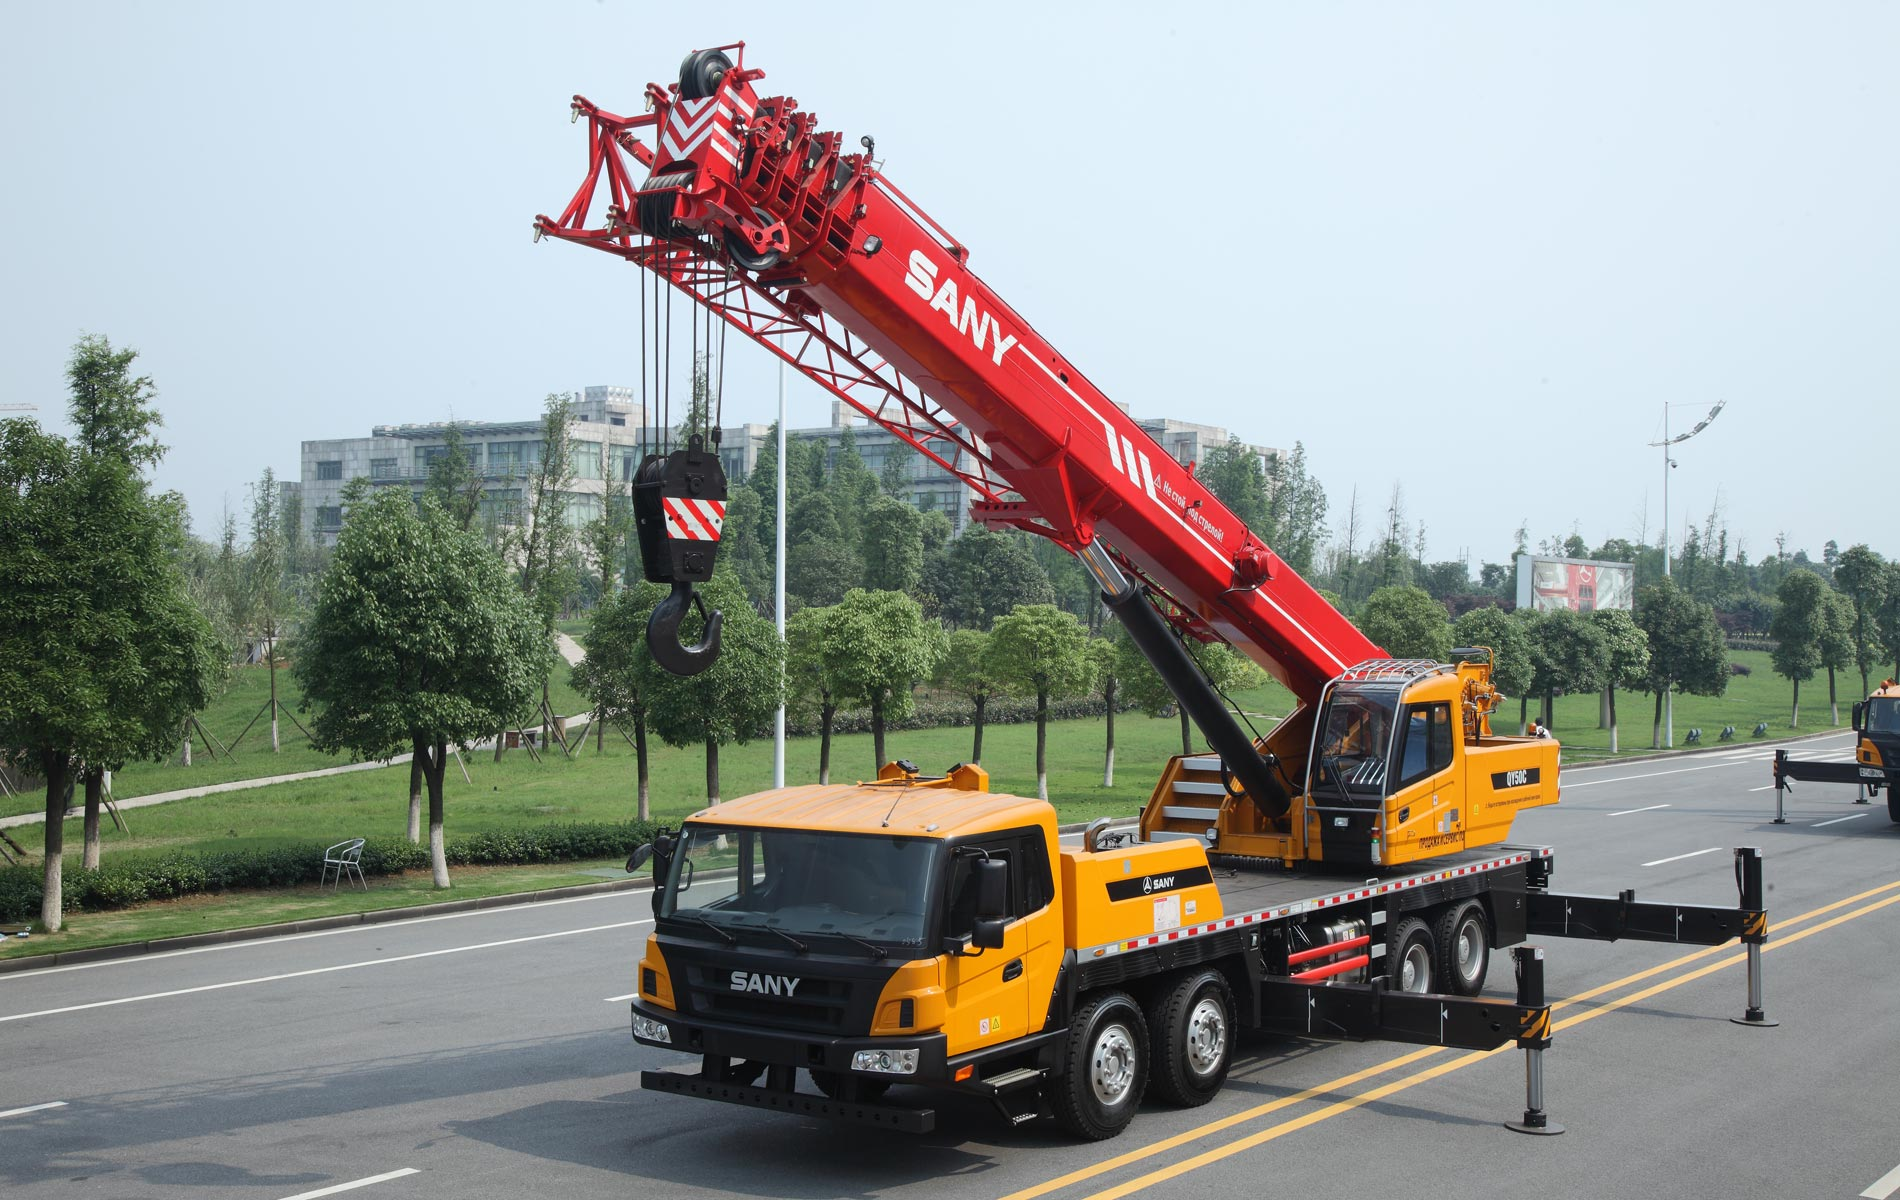 Safety Guidelines for Sany Cranes